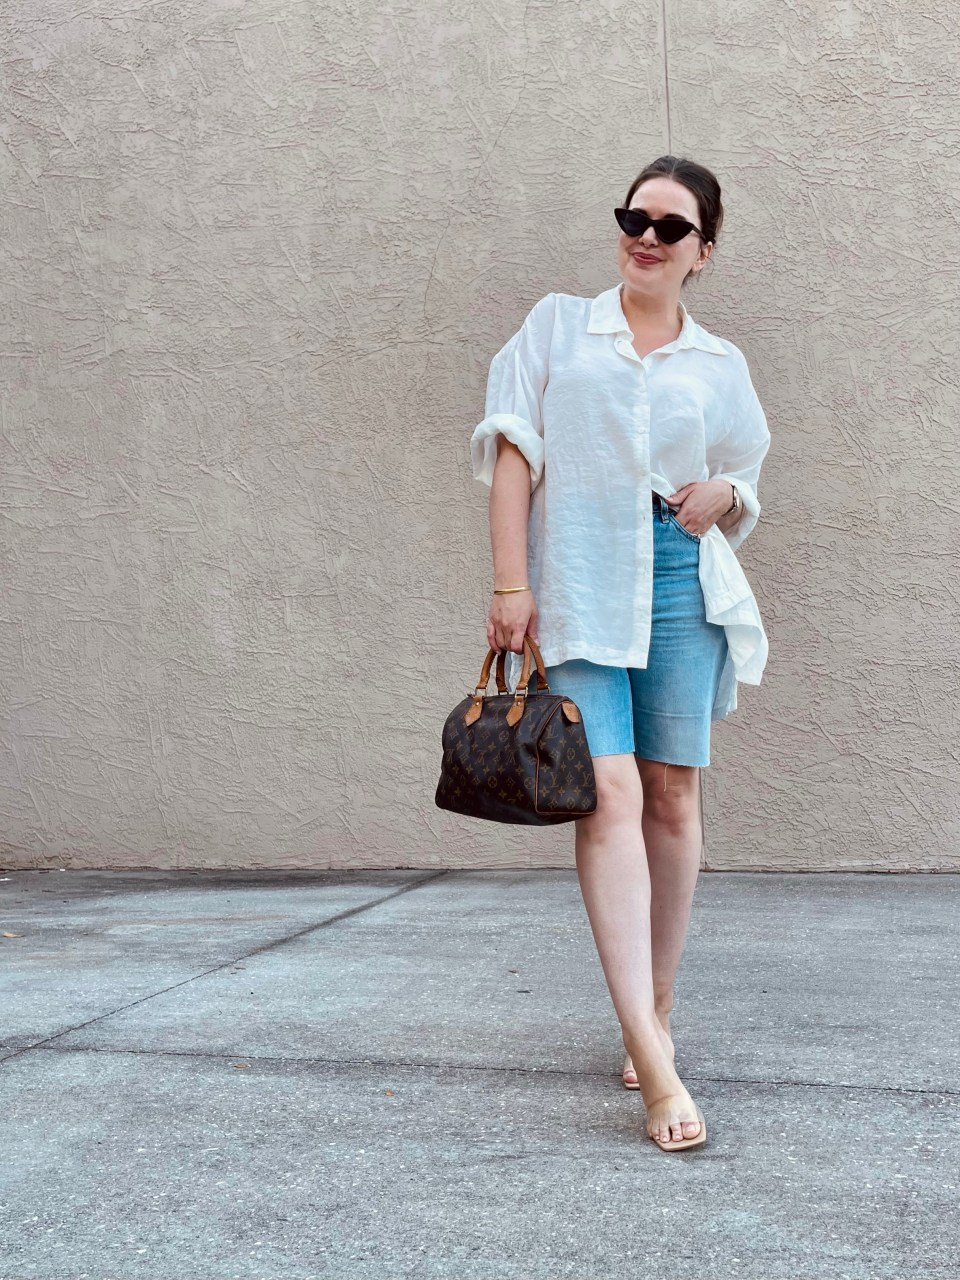 Denim Bermuda Shorts Outfit 2021 with Everlane Cheeky shorts and Zara top and shoes